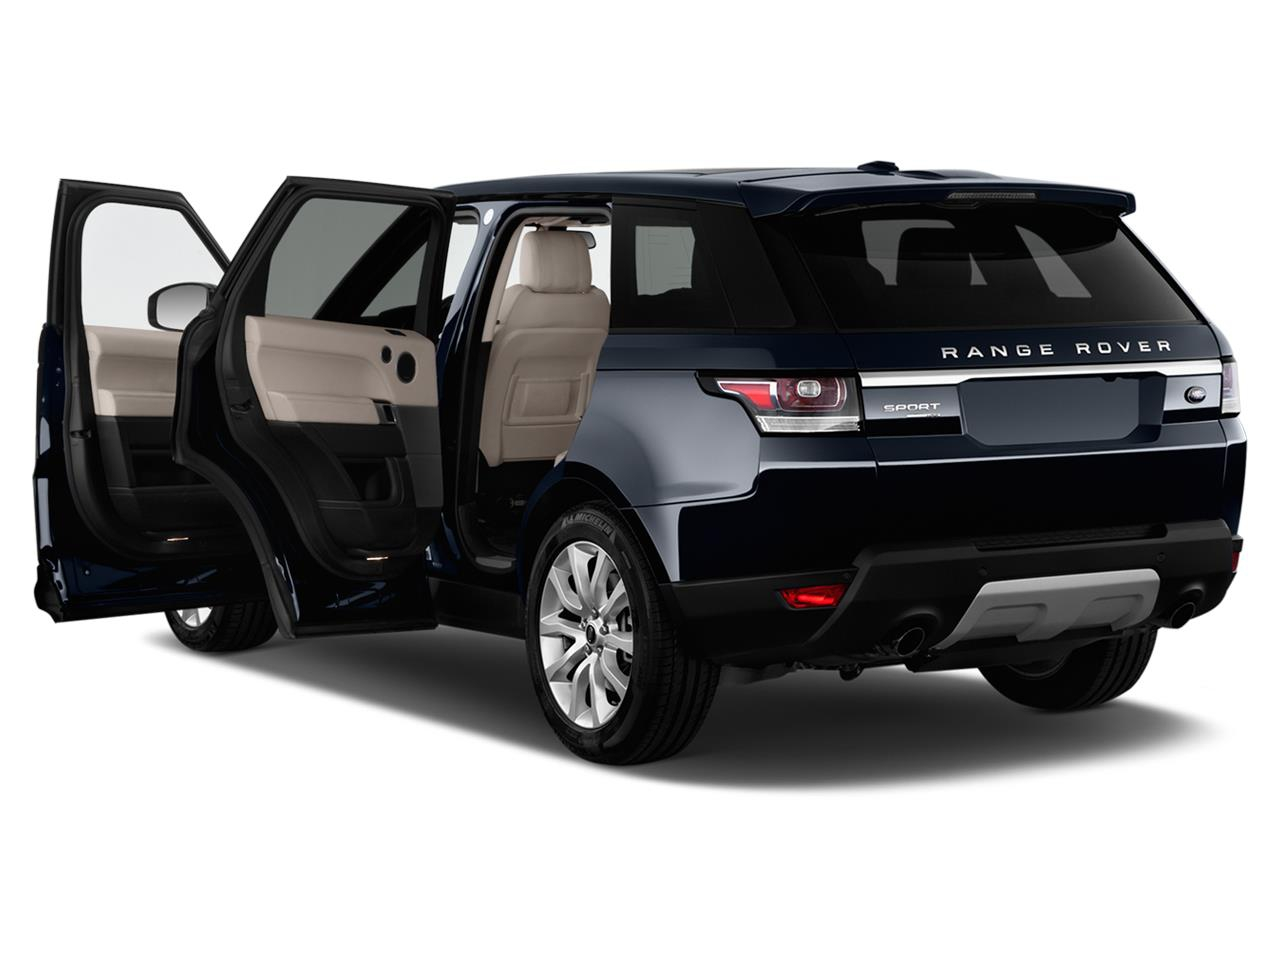 prix land rover range rover sport a partir de 505 300 dt. Black Bedroom Furniture Sets. Home Design Ideas